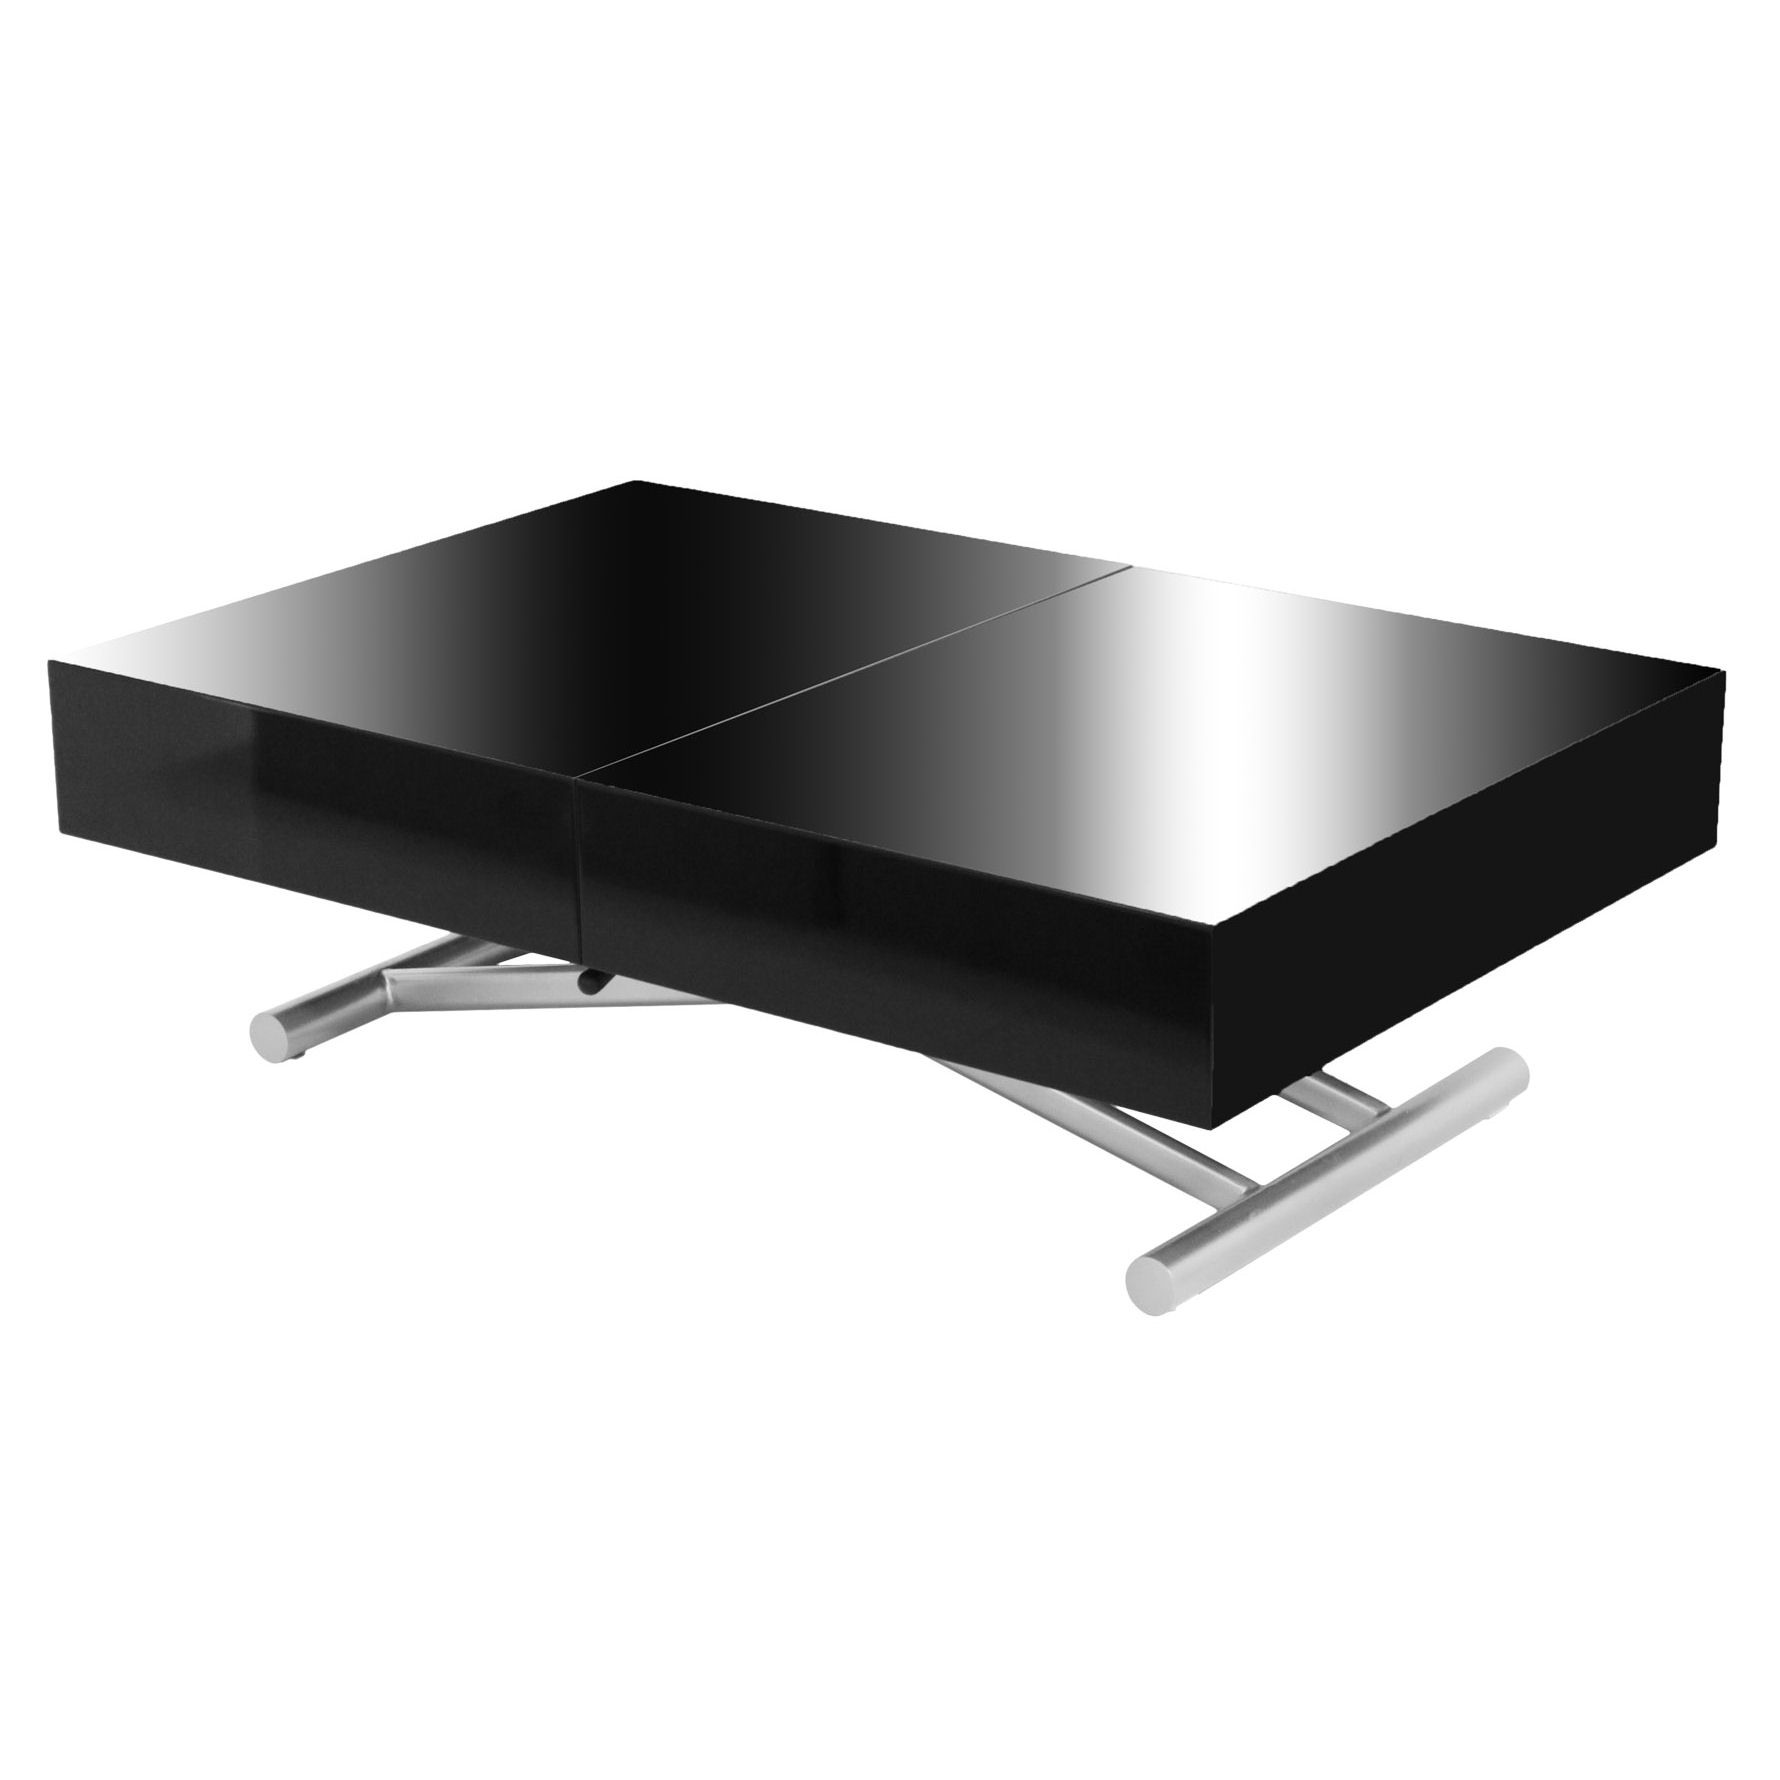 Table basse novy noire - Tables basses noires ...